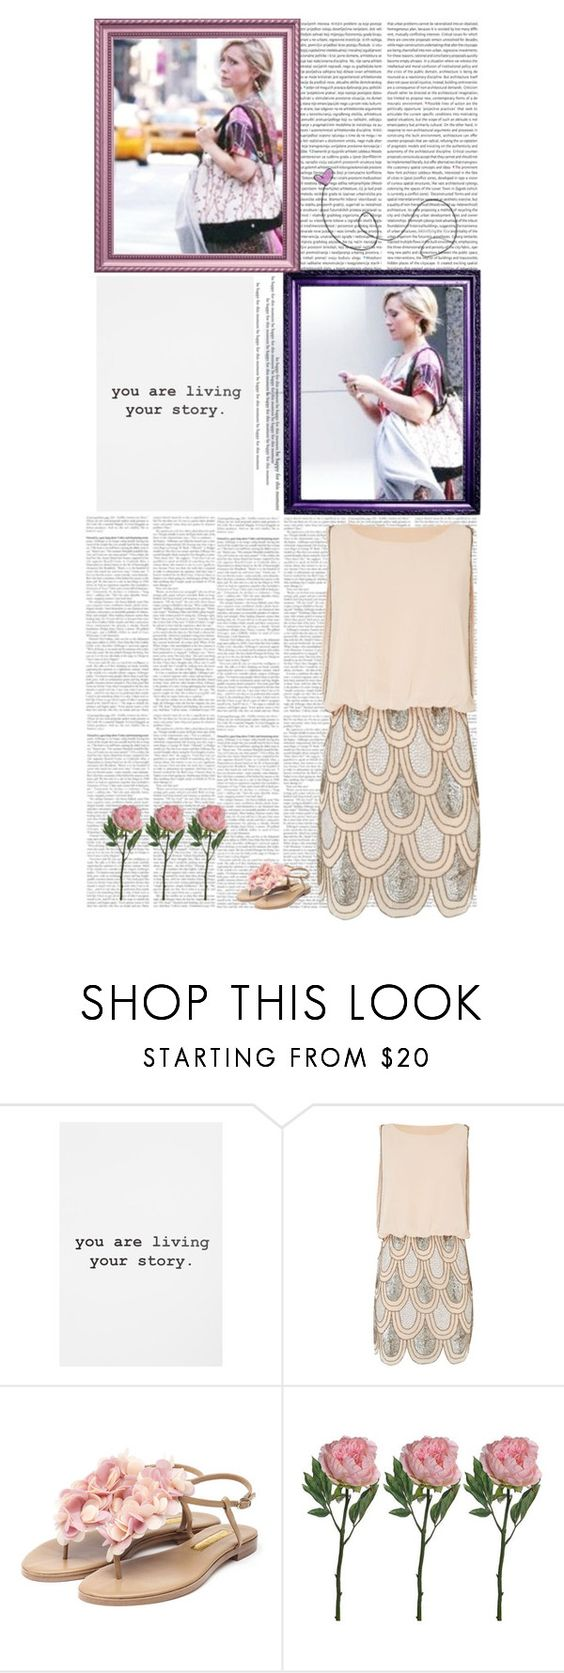 """""""Allison Mack"""" by followyourbliss ❤ liked on Polyvore featuring Urban Outfitters, Lace & Beads and Rupert Sanderson"""